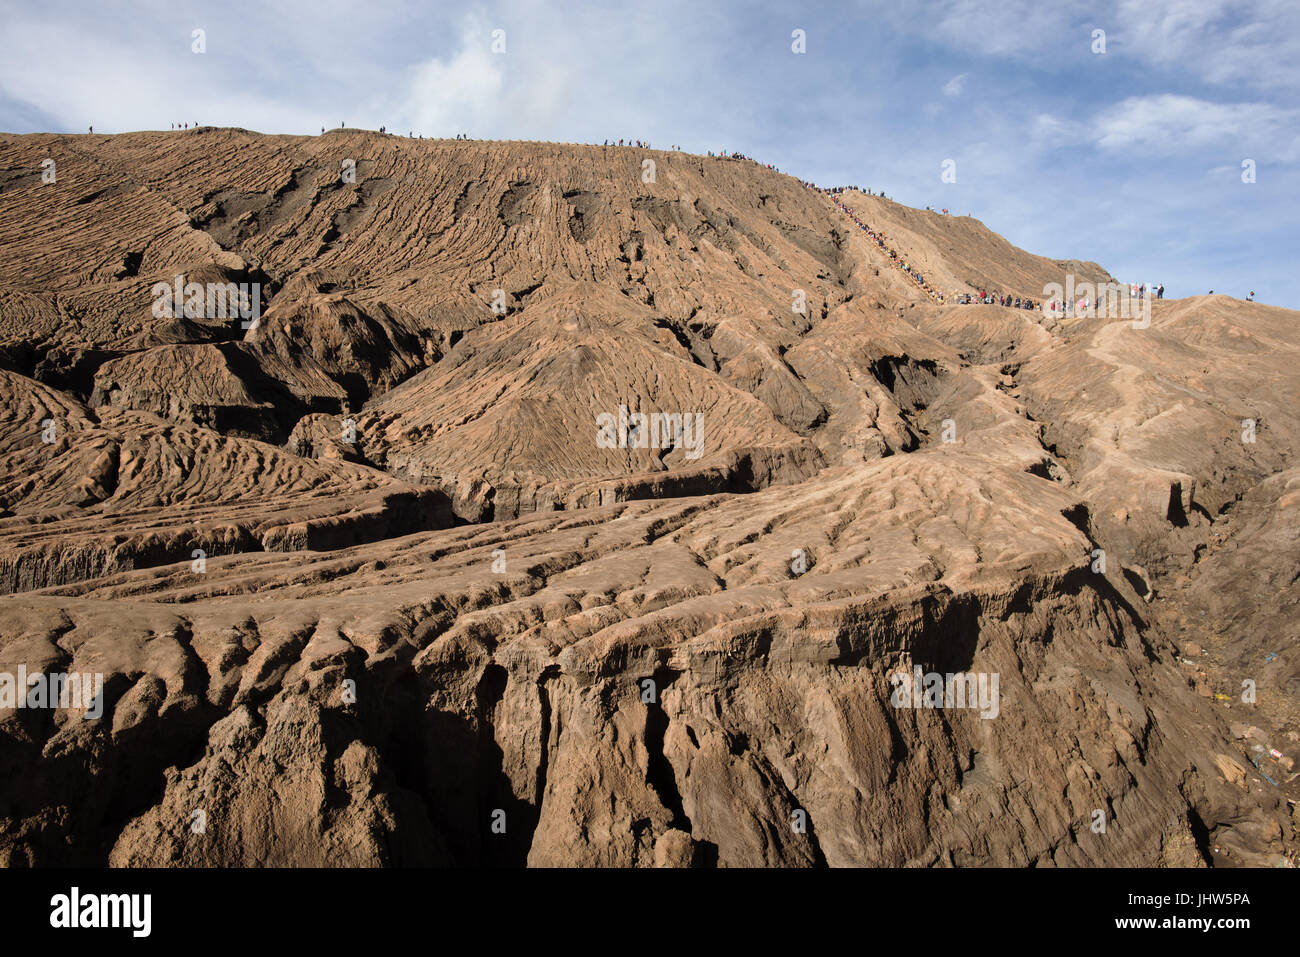 Tourists climbing to crater of Mount Bromo active volcano, East Java INdonesia. - Stock Image